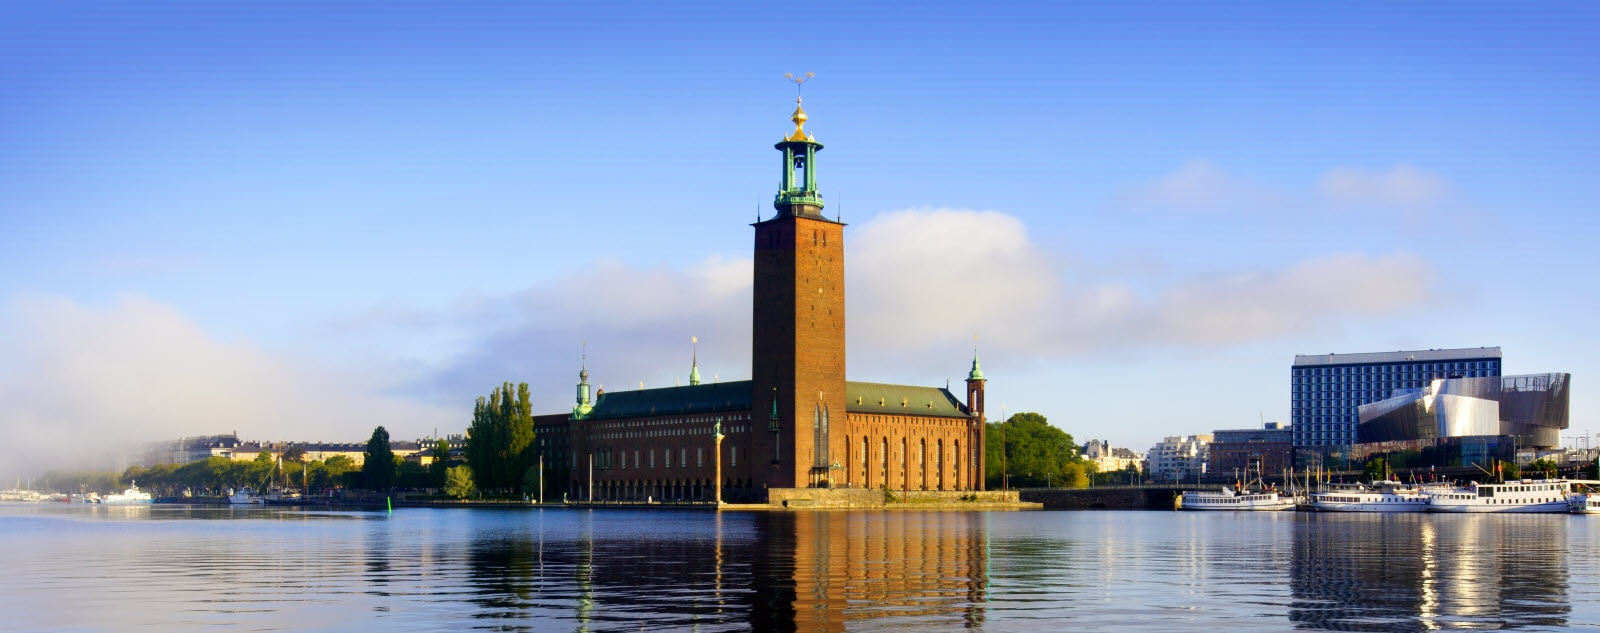 Stockholm City hall